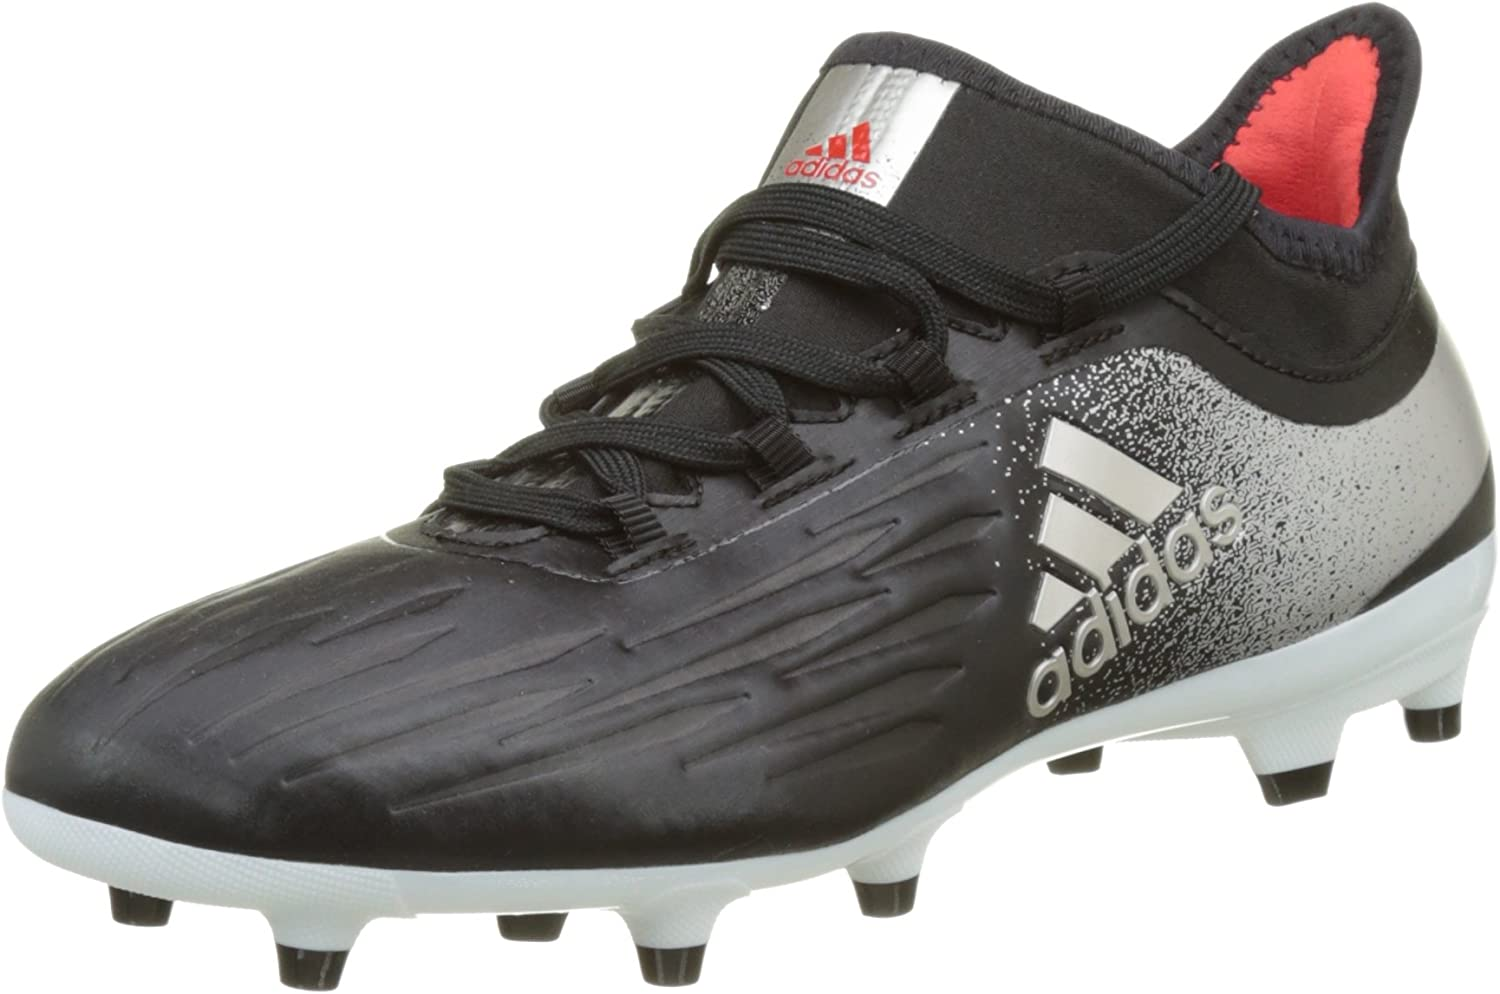 Adidas Performance Womens X 17.2 FG Football Boots -Black